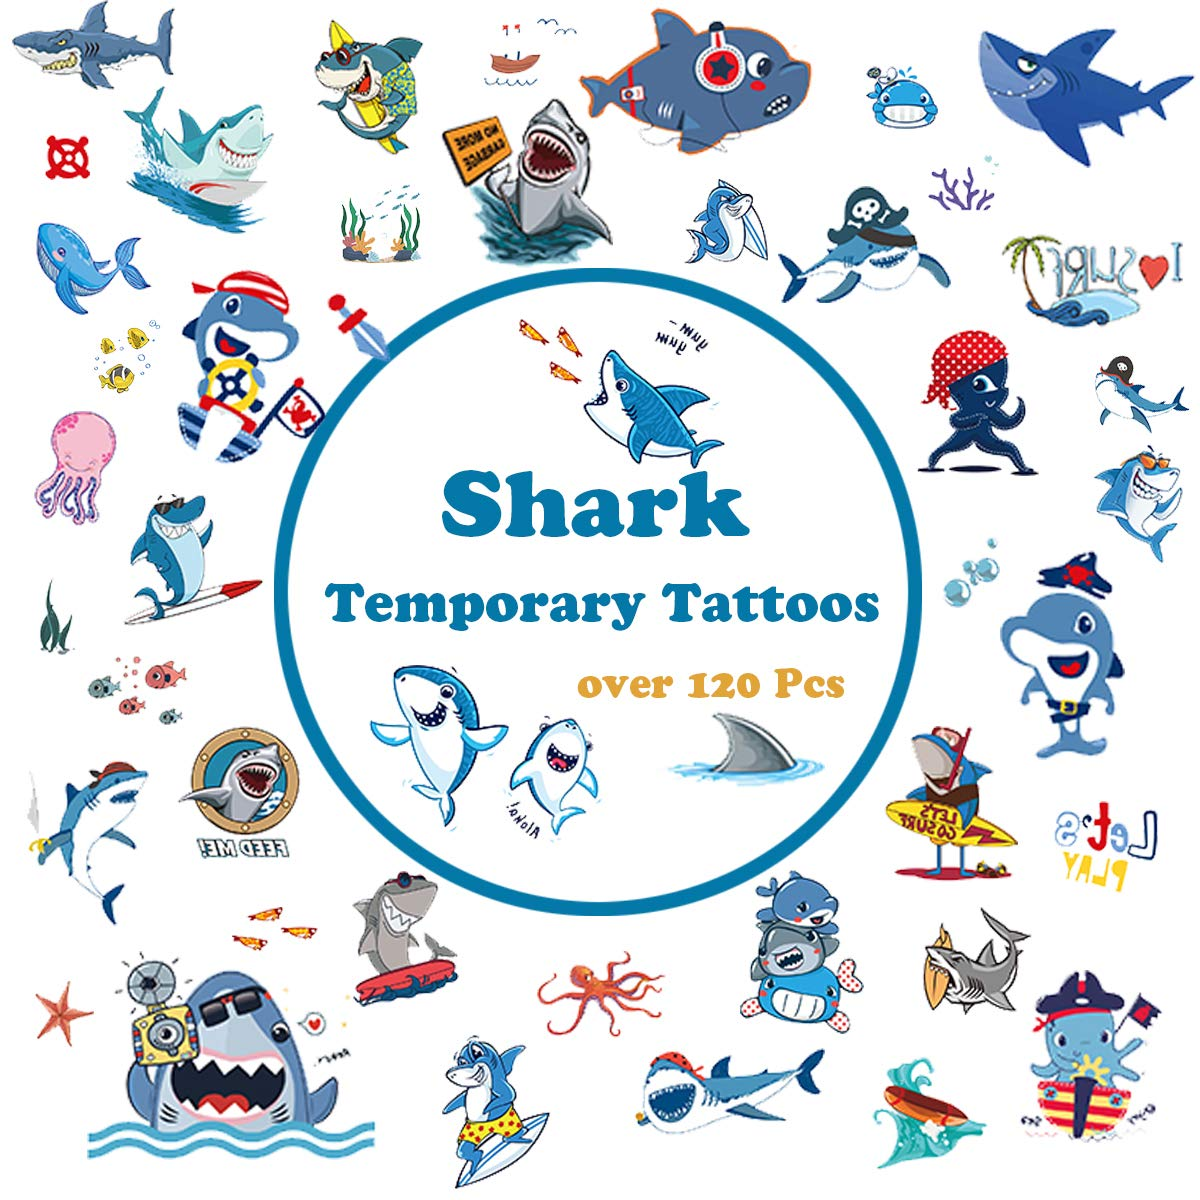 Shark Temporary Tattoos for kids, Shark Fake Tattoo for Shark Themed Party, Birthday Party Favor Supplies 120 Pcs